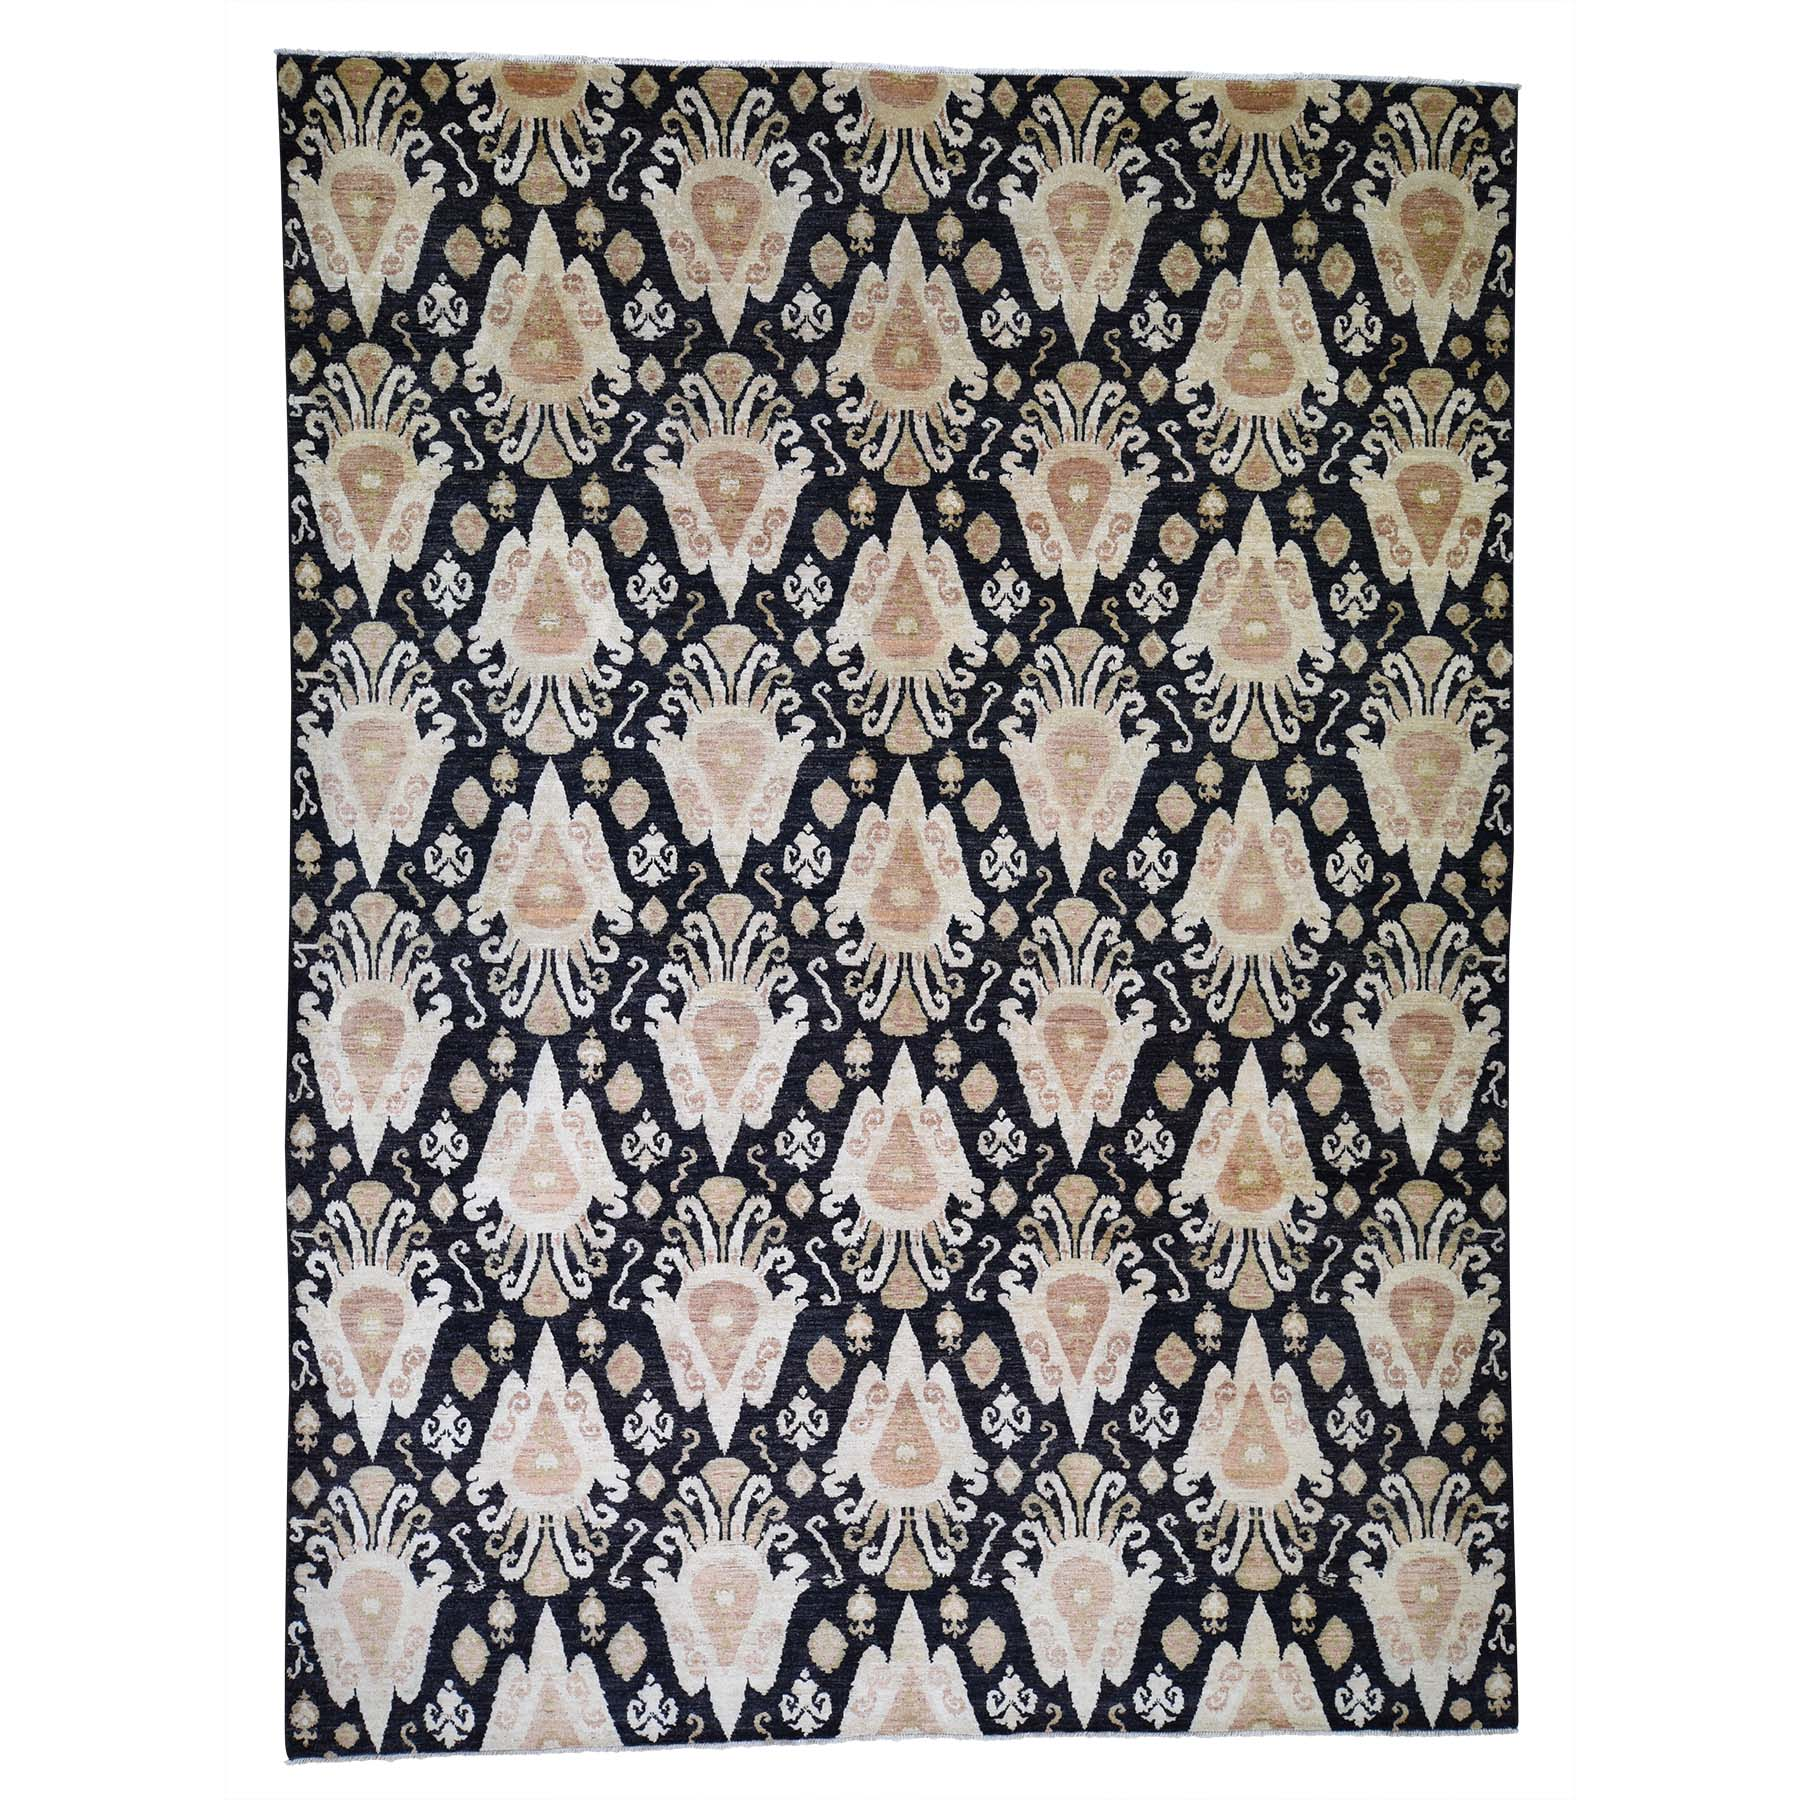 "9'2""x12'4"" Black Ikat Pure Wool Hand-Knotted Oriental Rug"